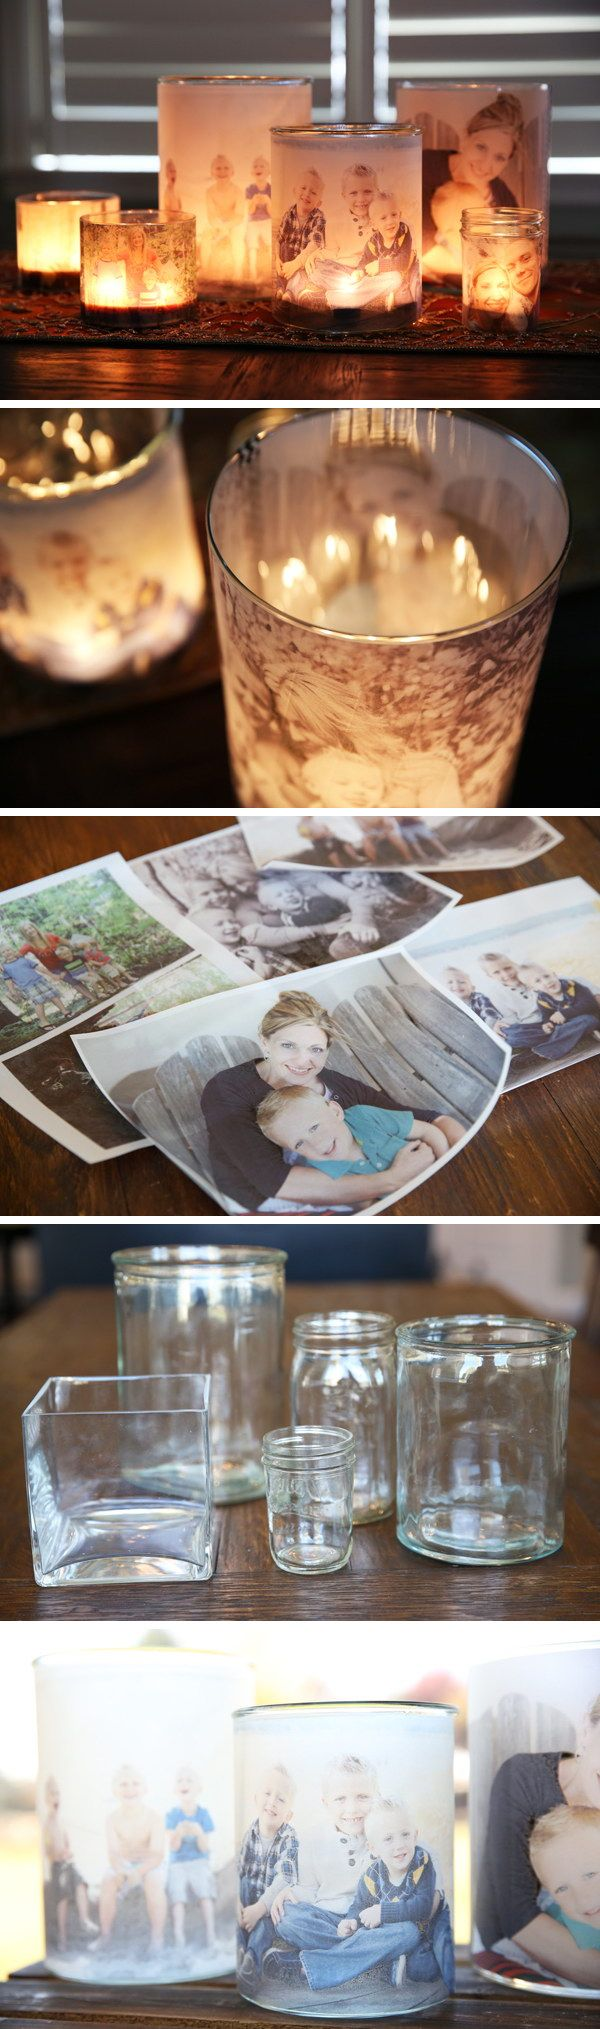 DIY Glowing Photo Luminaries.